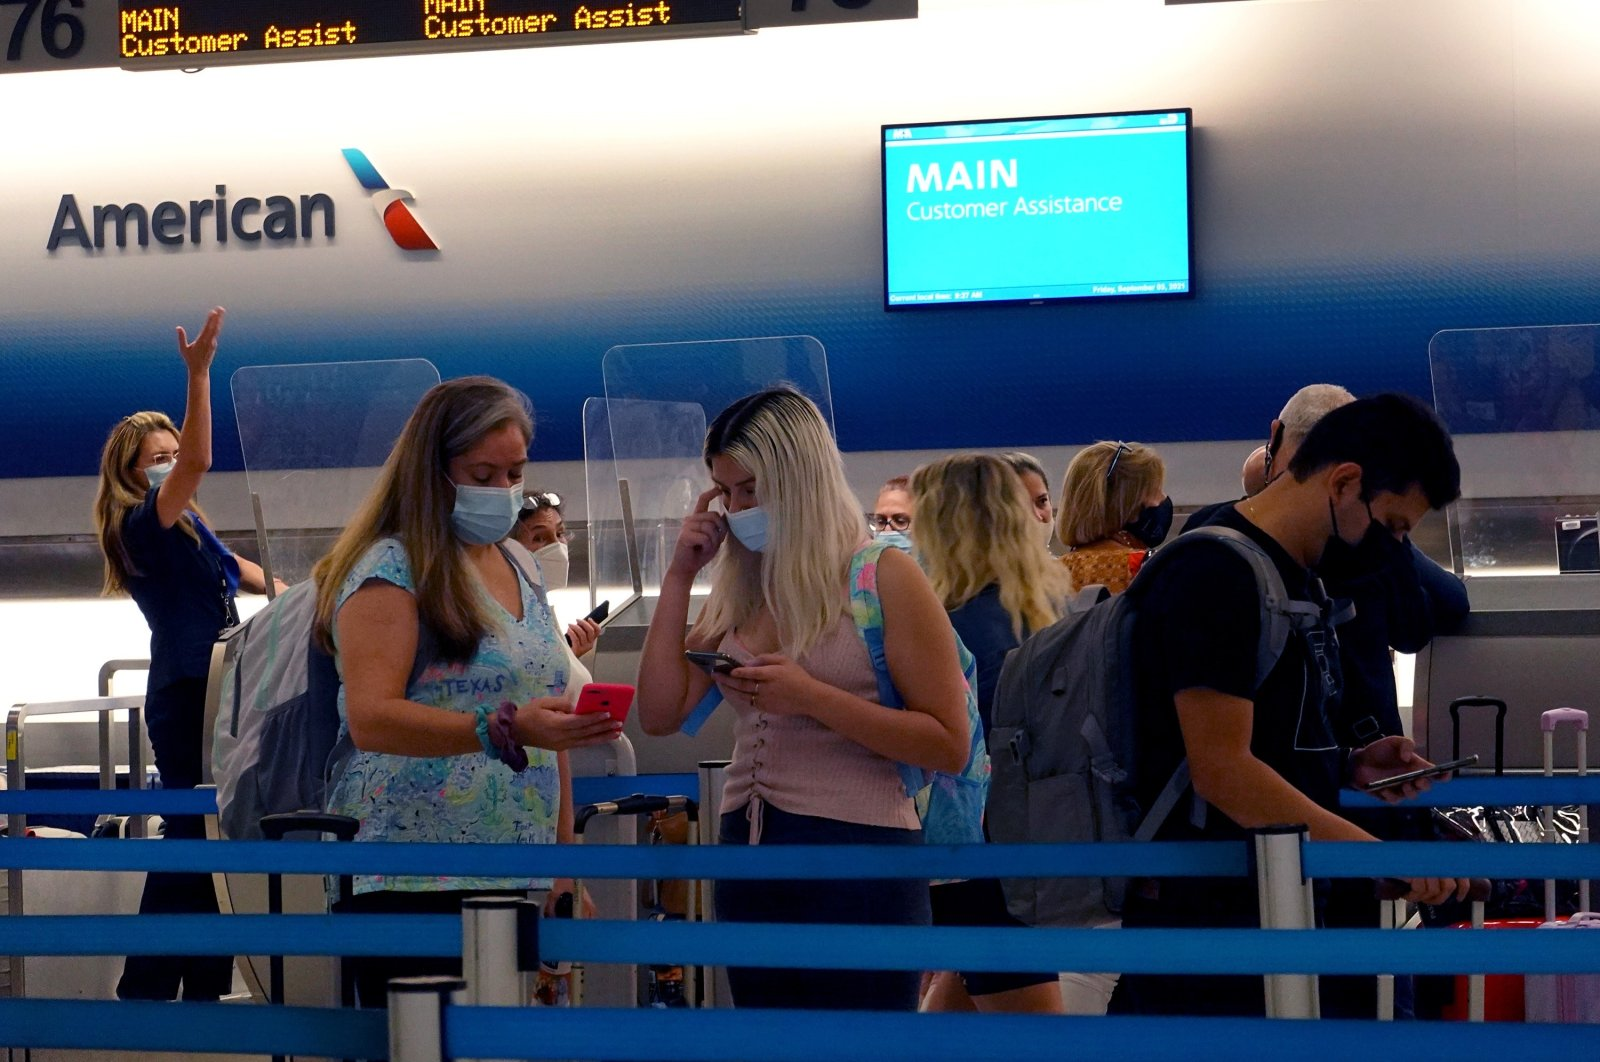 Travelers wait to drop their baggage at the American airlines counter in the Miami International Airport before starting the Labor Day weekend on Sept. 3, 2021, in Miami, Florida, U.S. (AFP Photo)